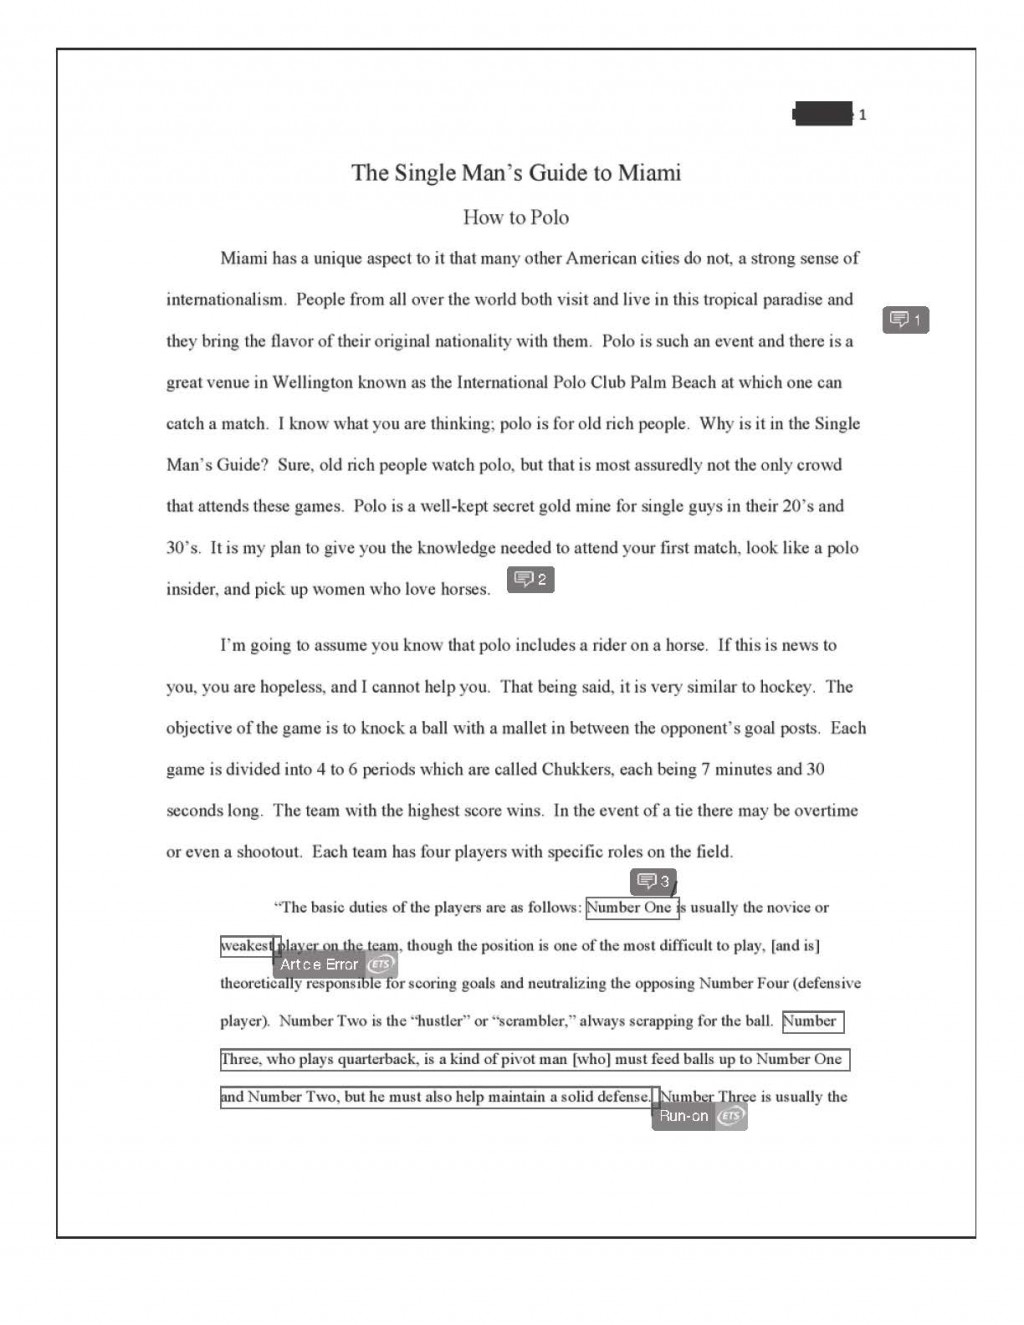 005 Informative Essay Topics Essays Sample Funny Argumentative For Middle School Final How To Polo Redacted P College Students Hilarious Good Remarkable 2018 Prompts High Prompt 4th Grade Large